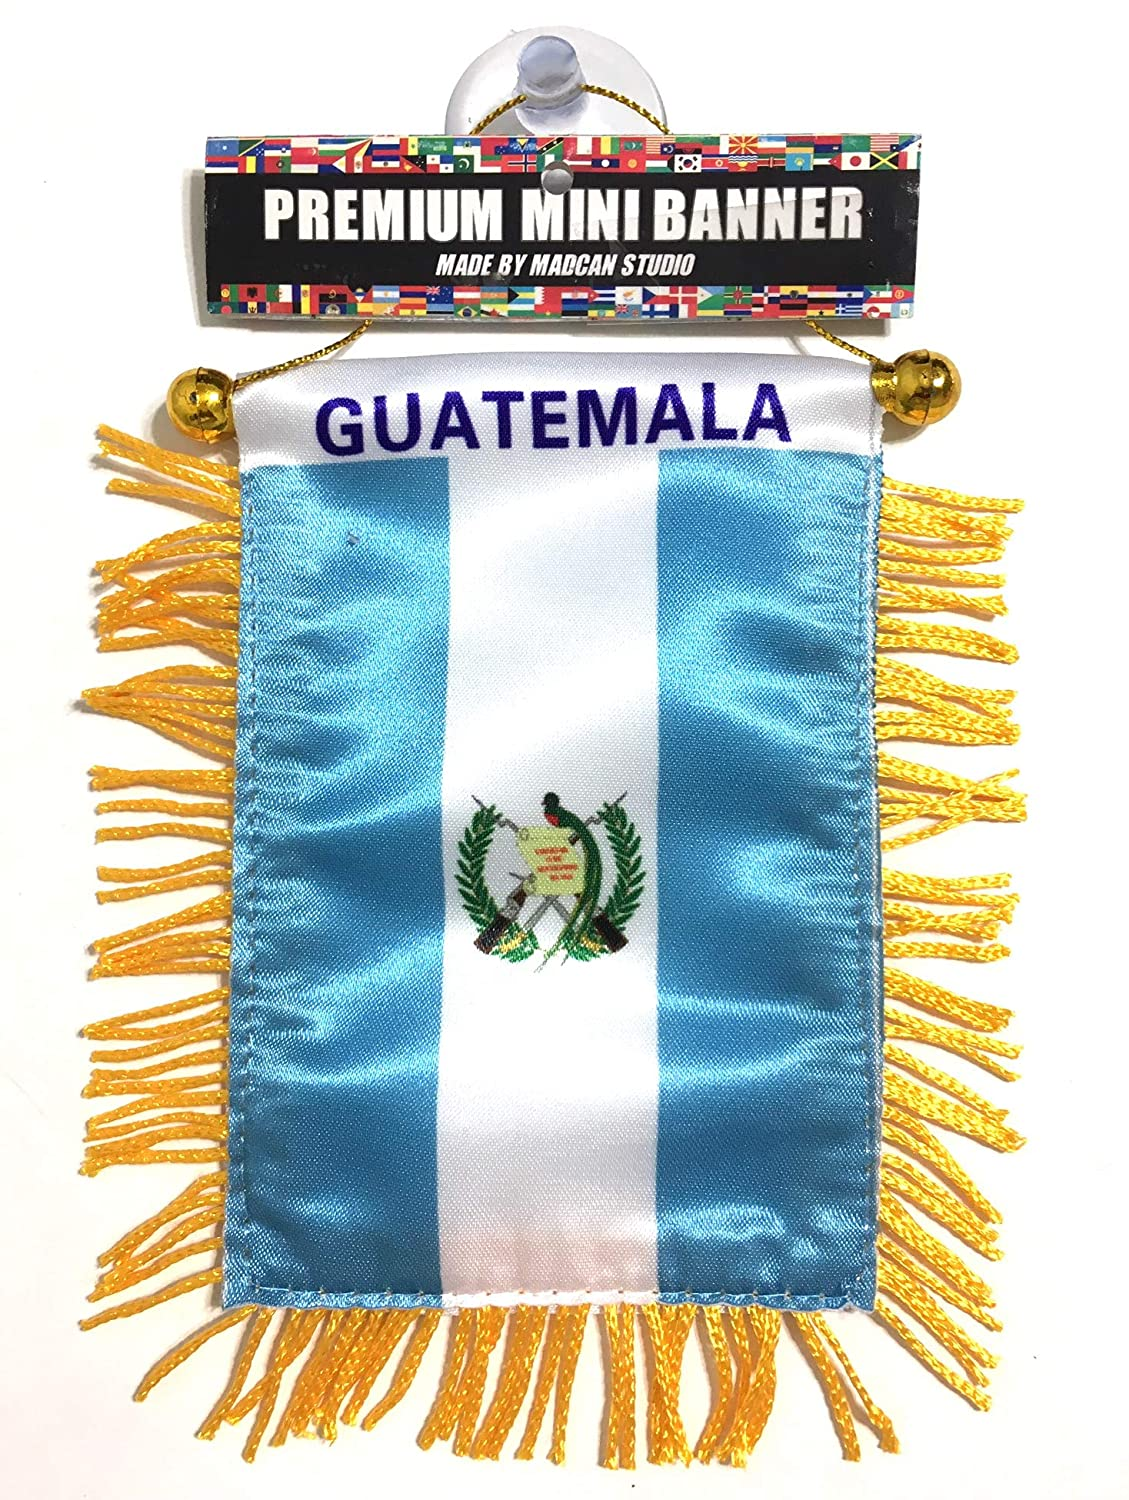 Guatemala Flags for car Interior Rearview Mirror or Home Sticks to Windows Glass Quick and Easy Quality Small Hanging Mini Banner Flags car Accessories (1 Flag